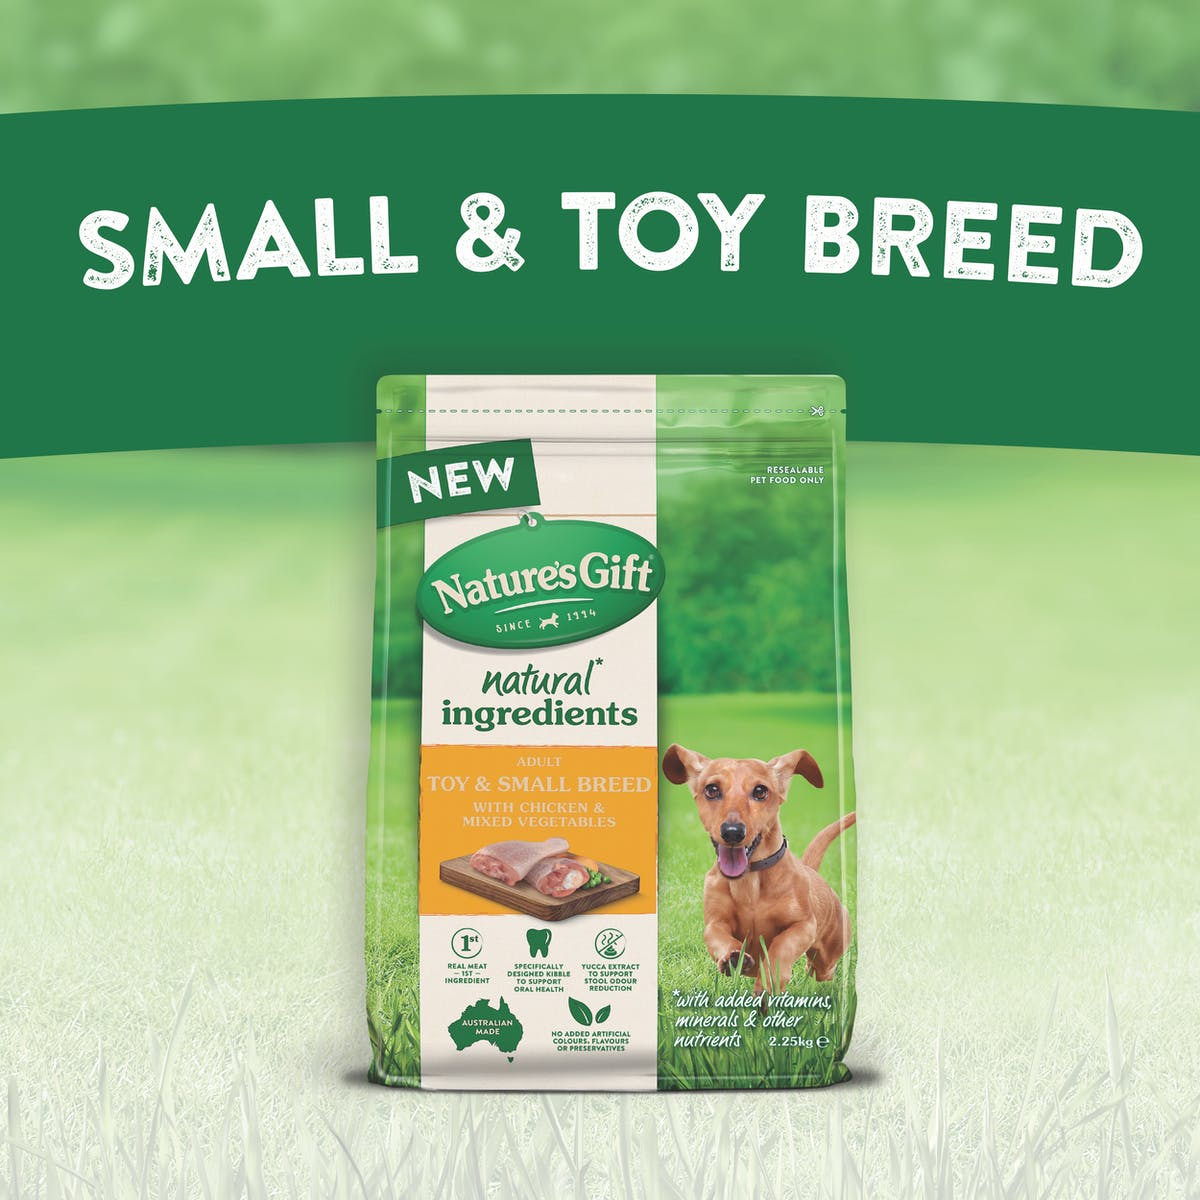 Nature's Gift | Toy & Small Breed with Chicken & Mixed Vegetables | Dry dog food | Back of pack